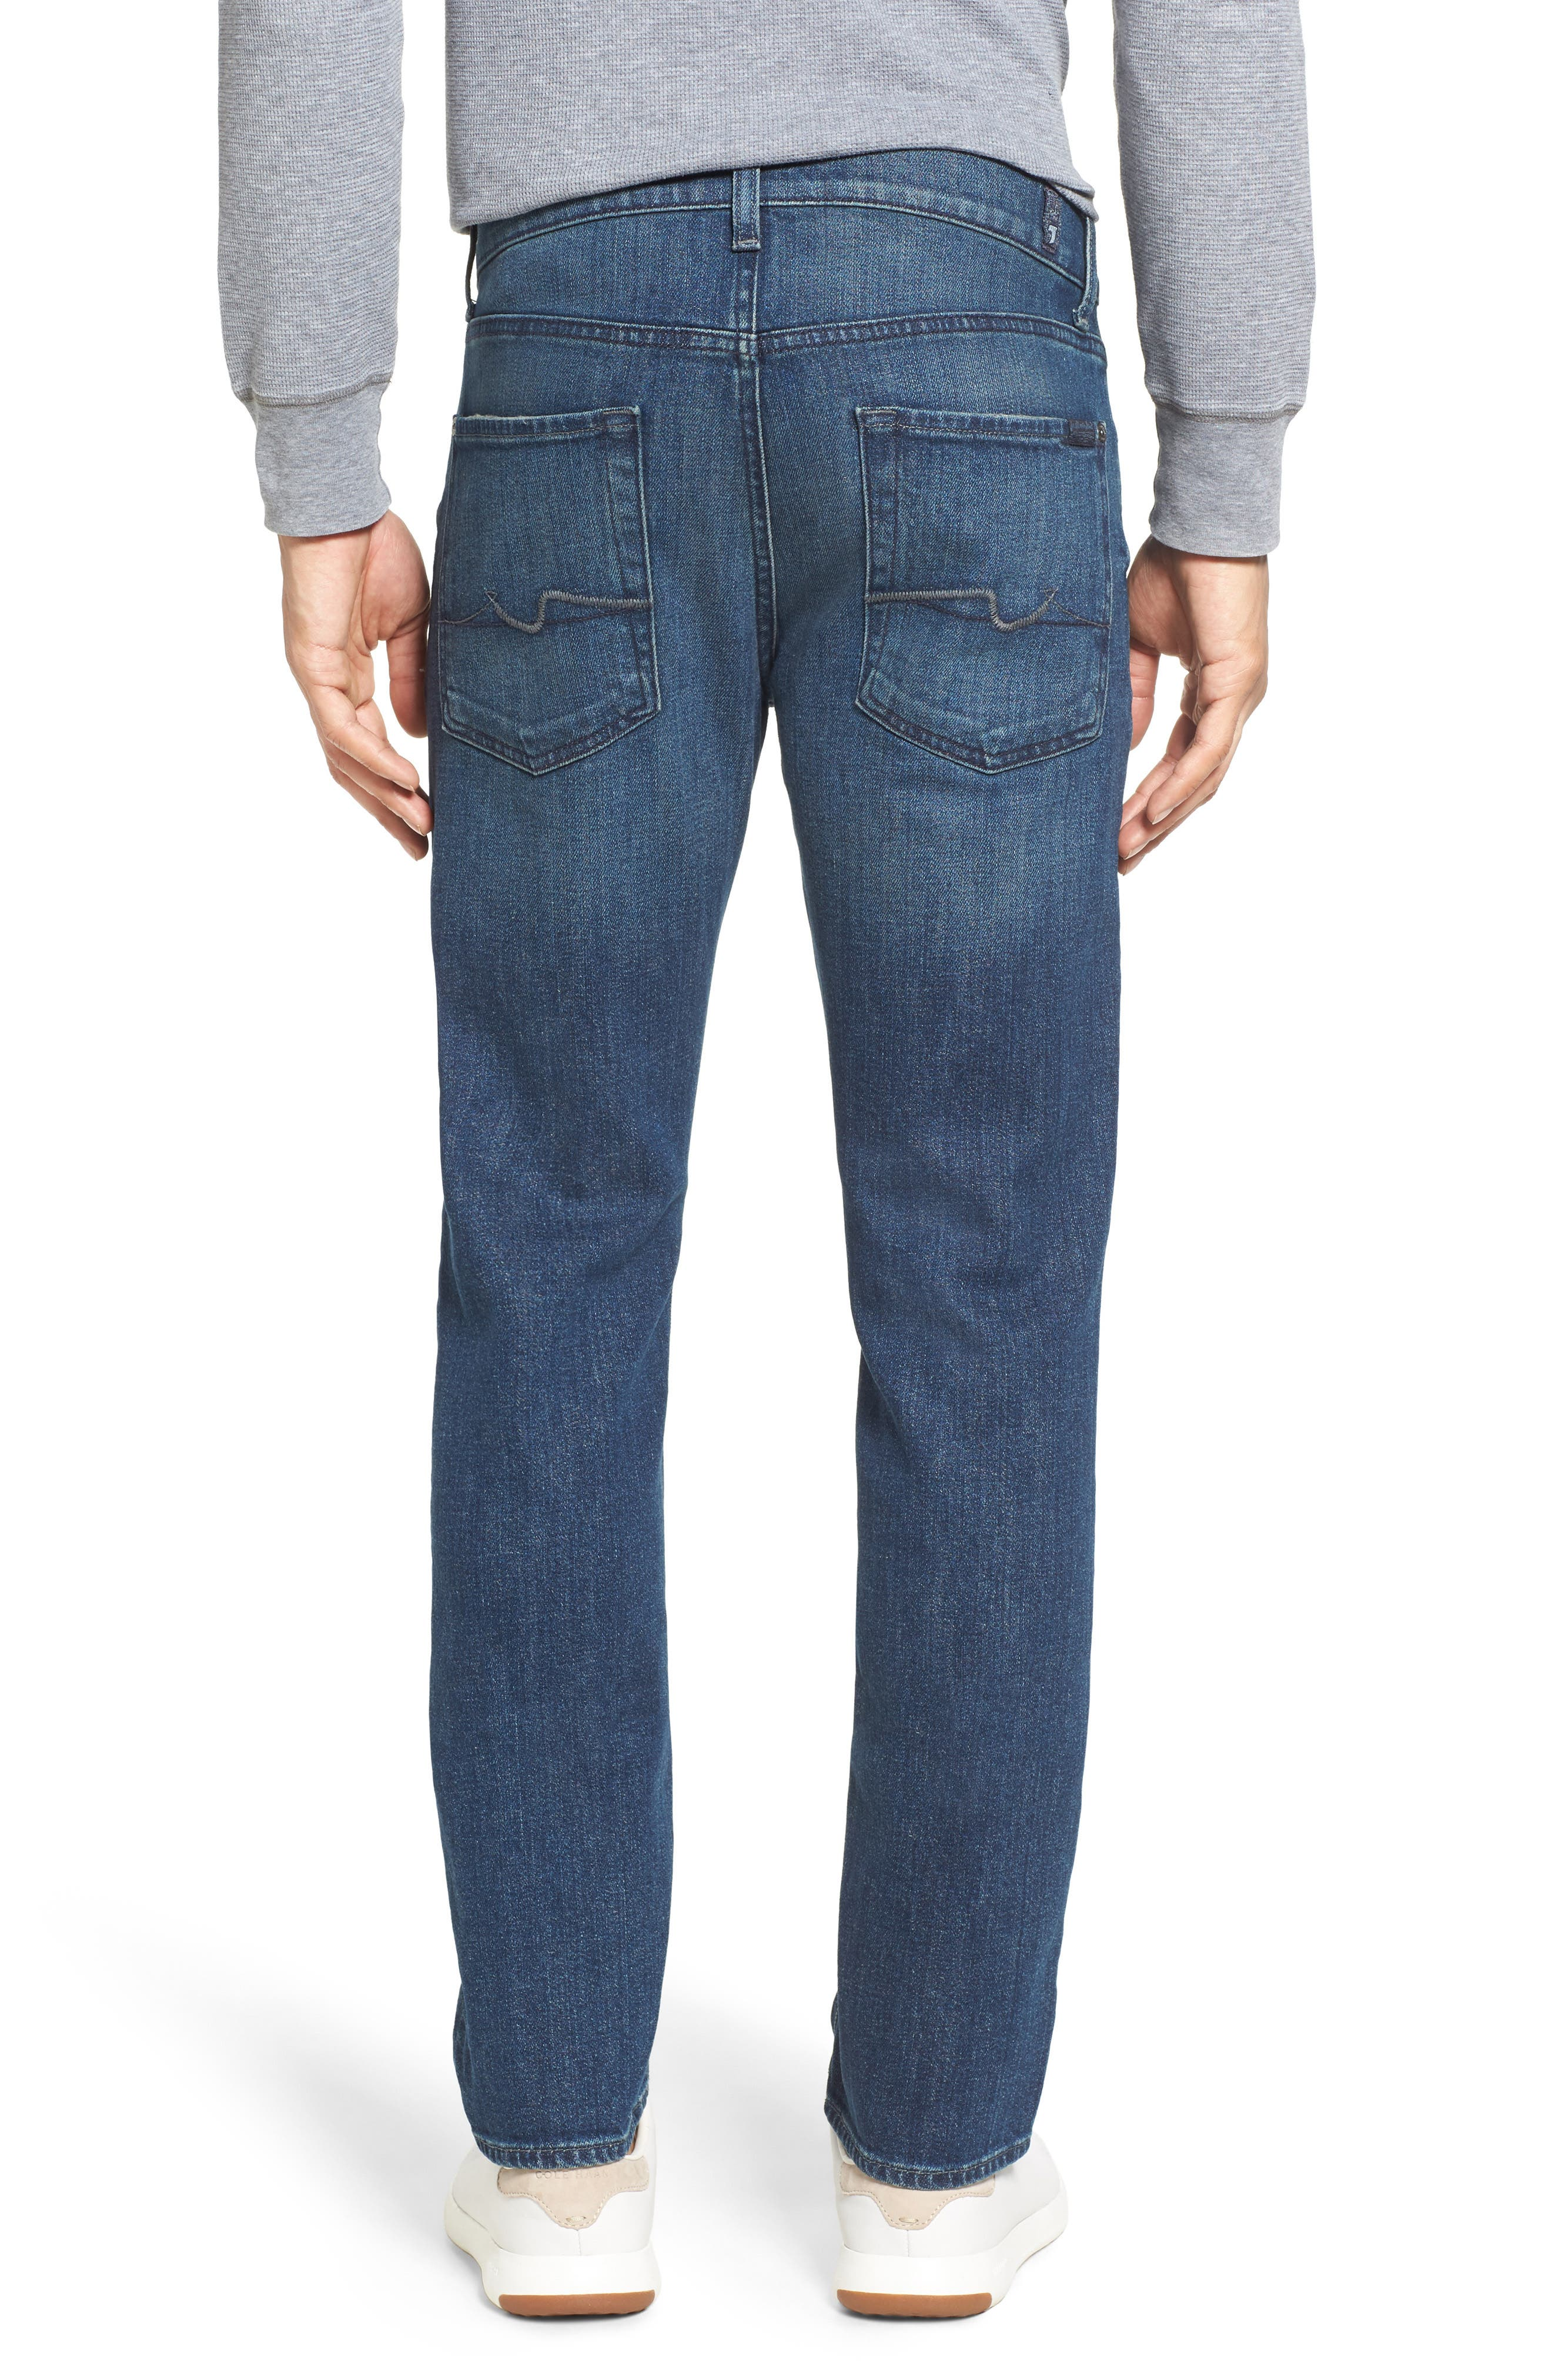 7 For All Mankind Slimmy Slim Fit Jeans,                             Alternate thumbnail 2, color,                             406